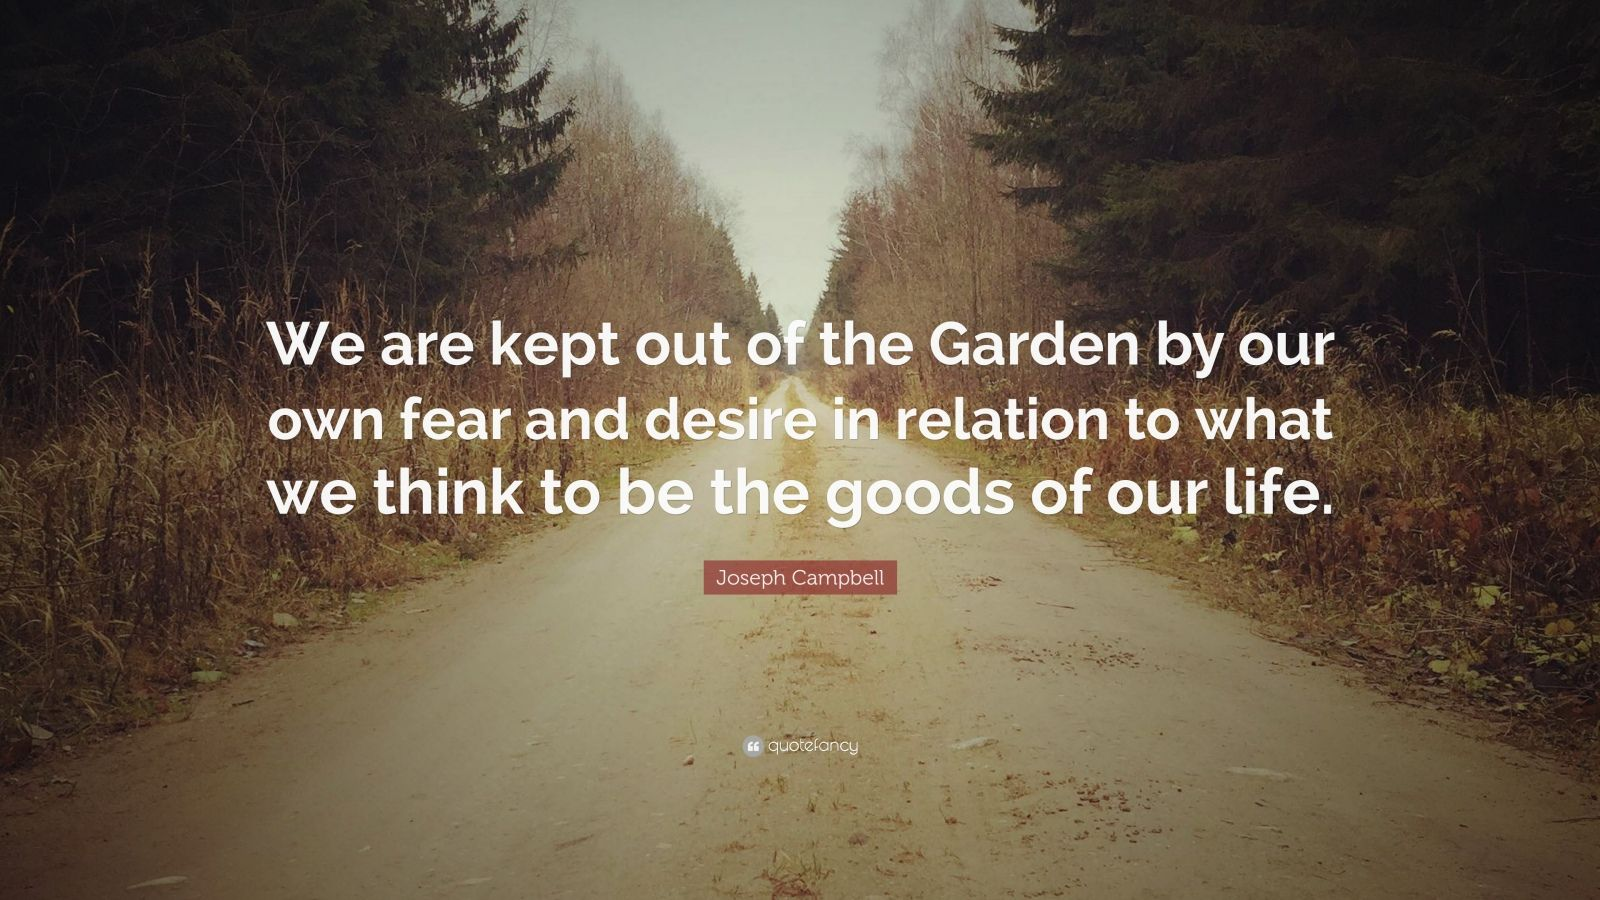 """Joseph Campbell Quote: """"We are kept out of the Garden by our own fear and desire in relation to what we think to be the goods of our life."""""""